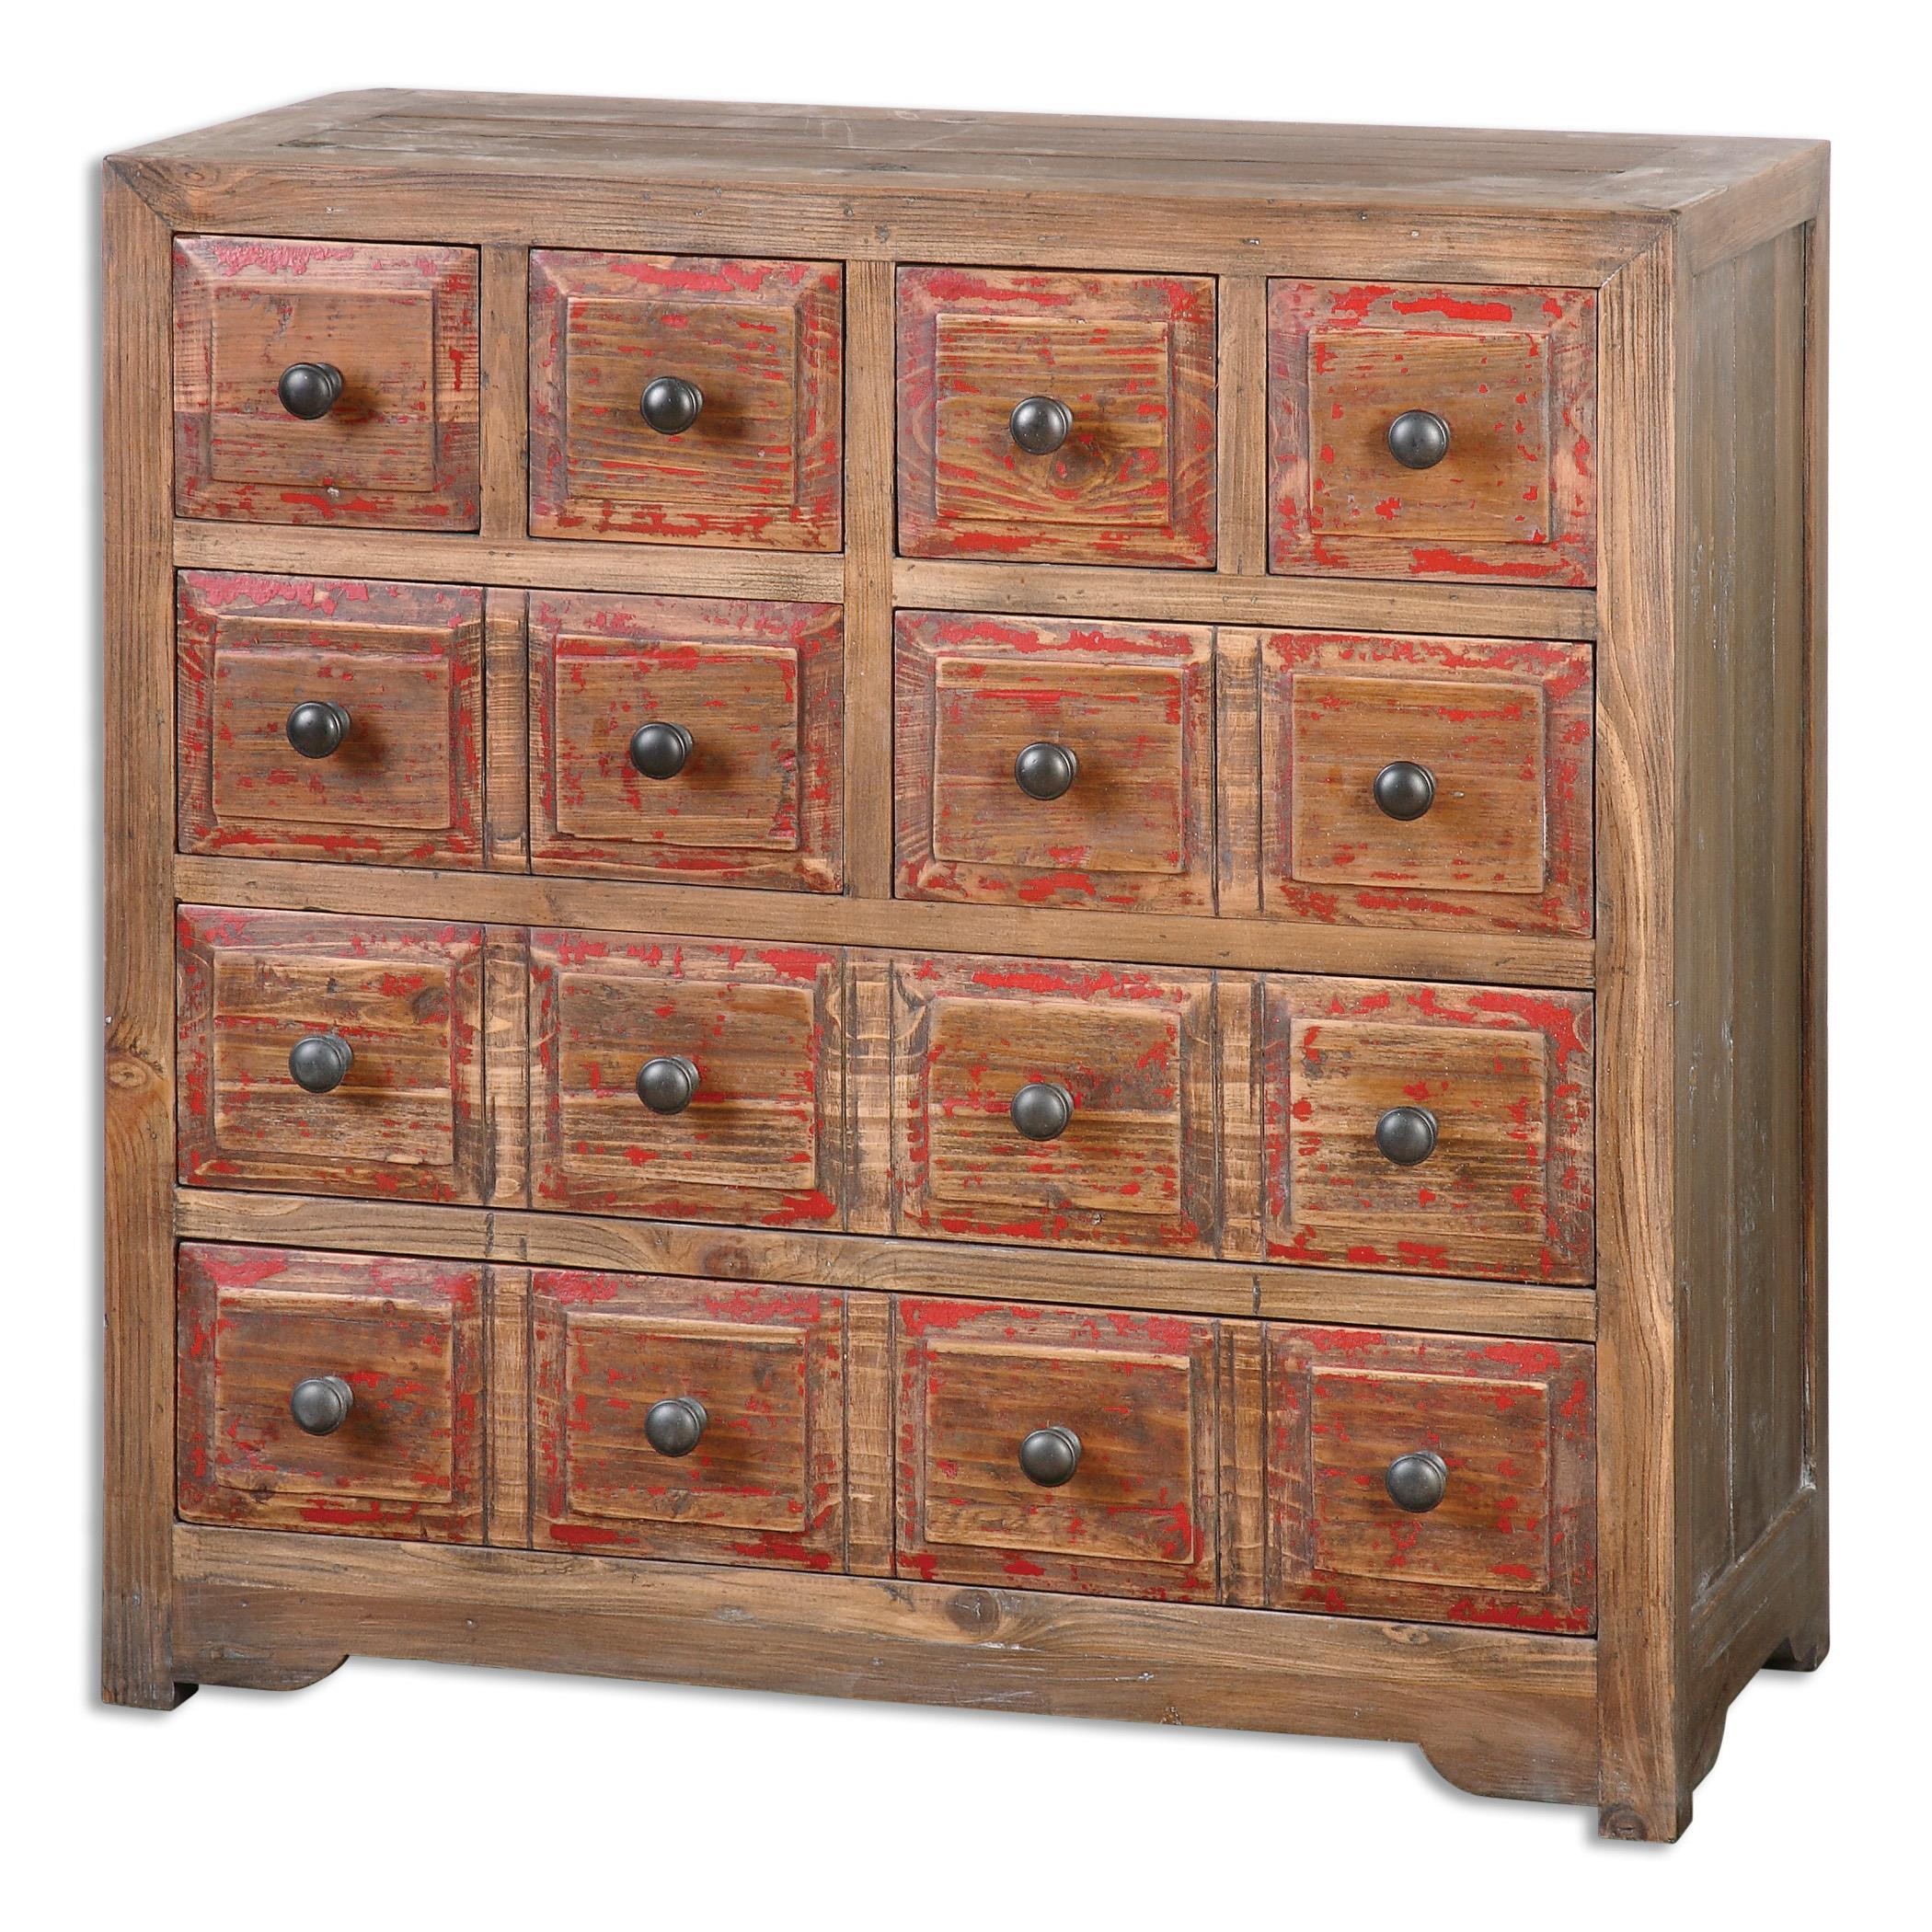 Uttermost Accent Furniture Rylee Weathered Drawer Chest - Item Number: 24481